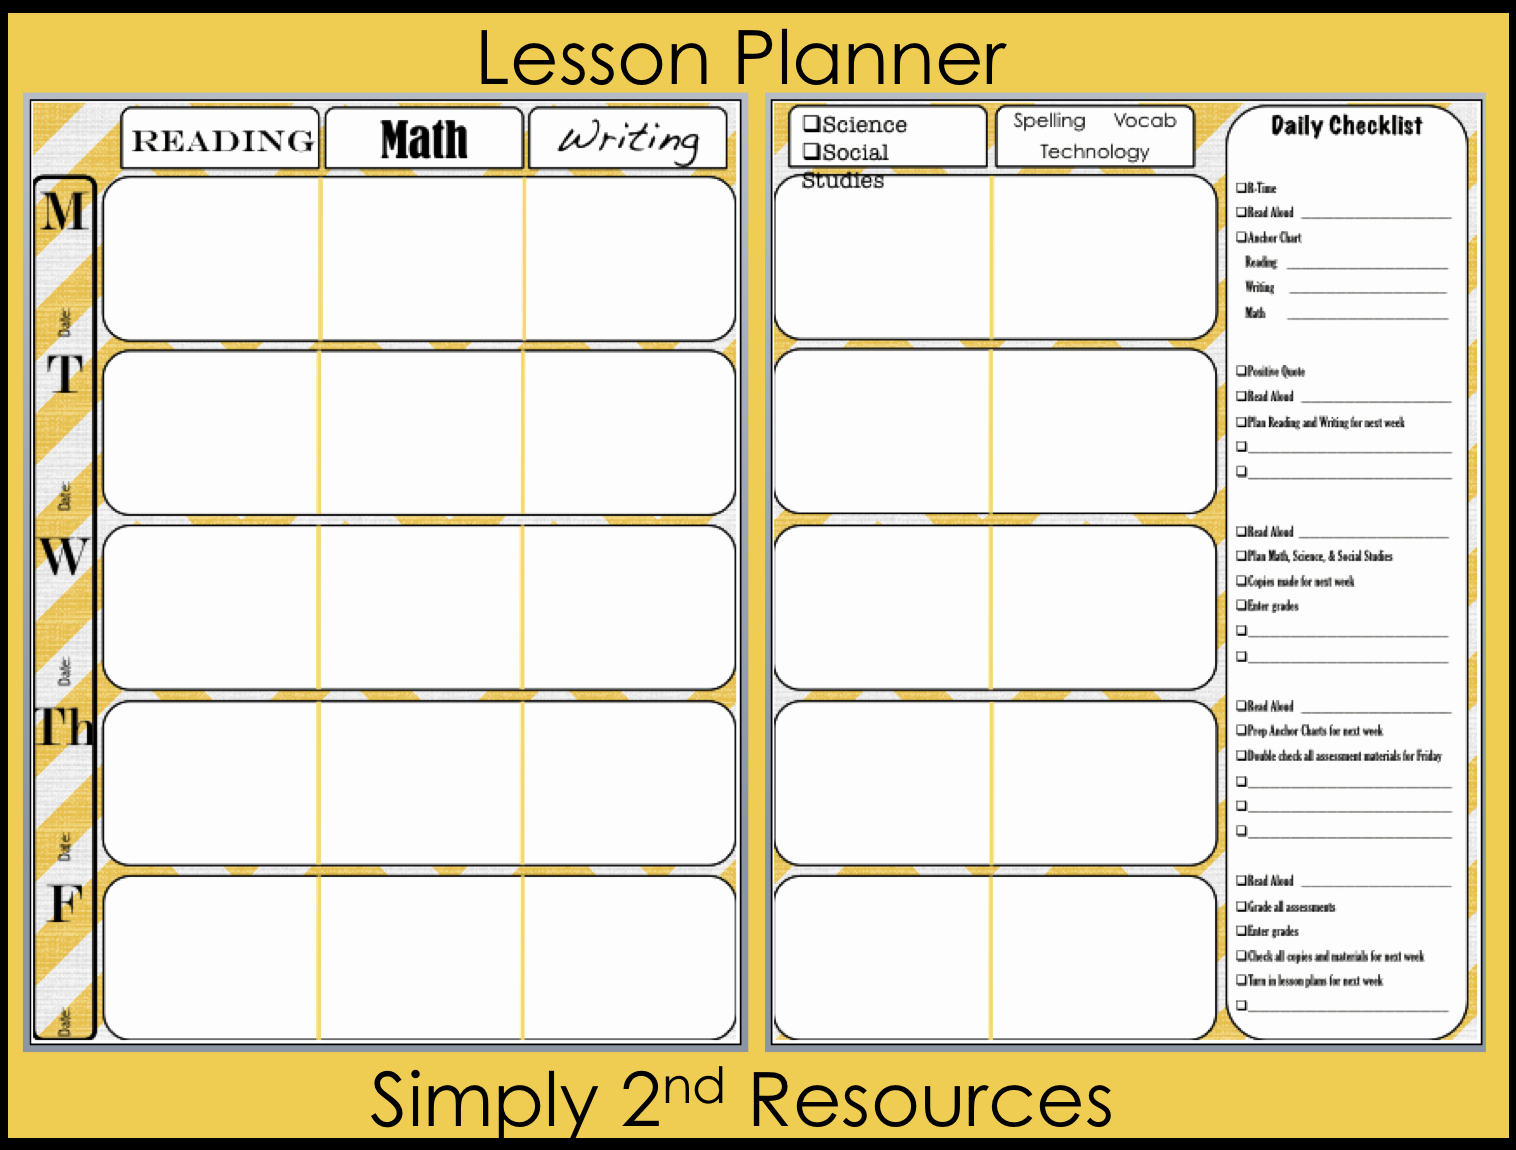 Free Weekly Lesson Plan Template Luxury Simply 2nd Resources Lesson Plan Template so Excited to